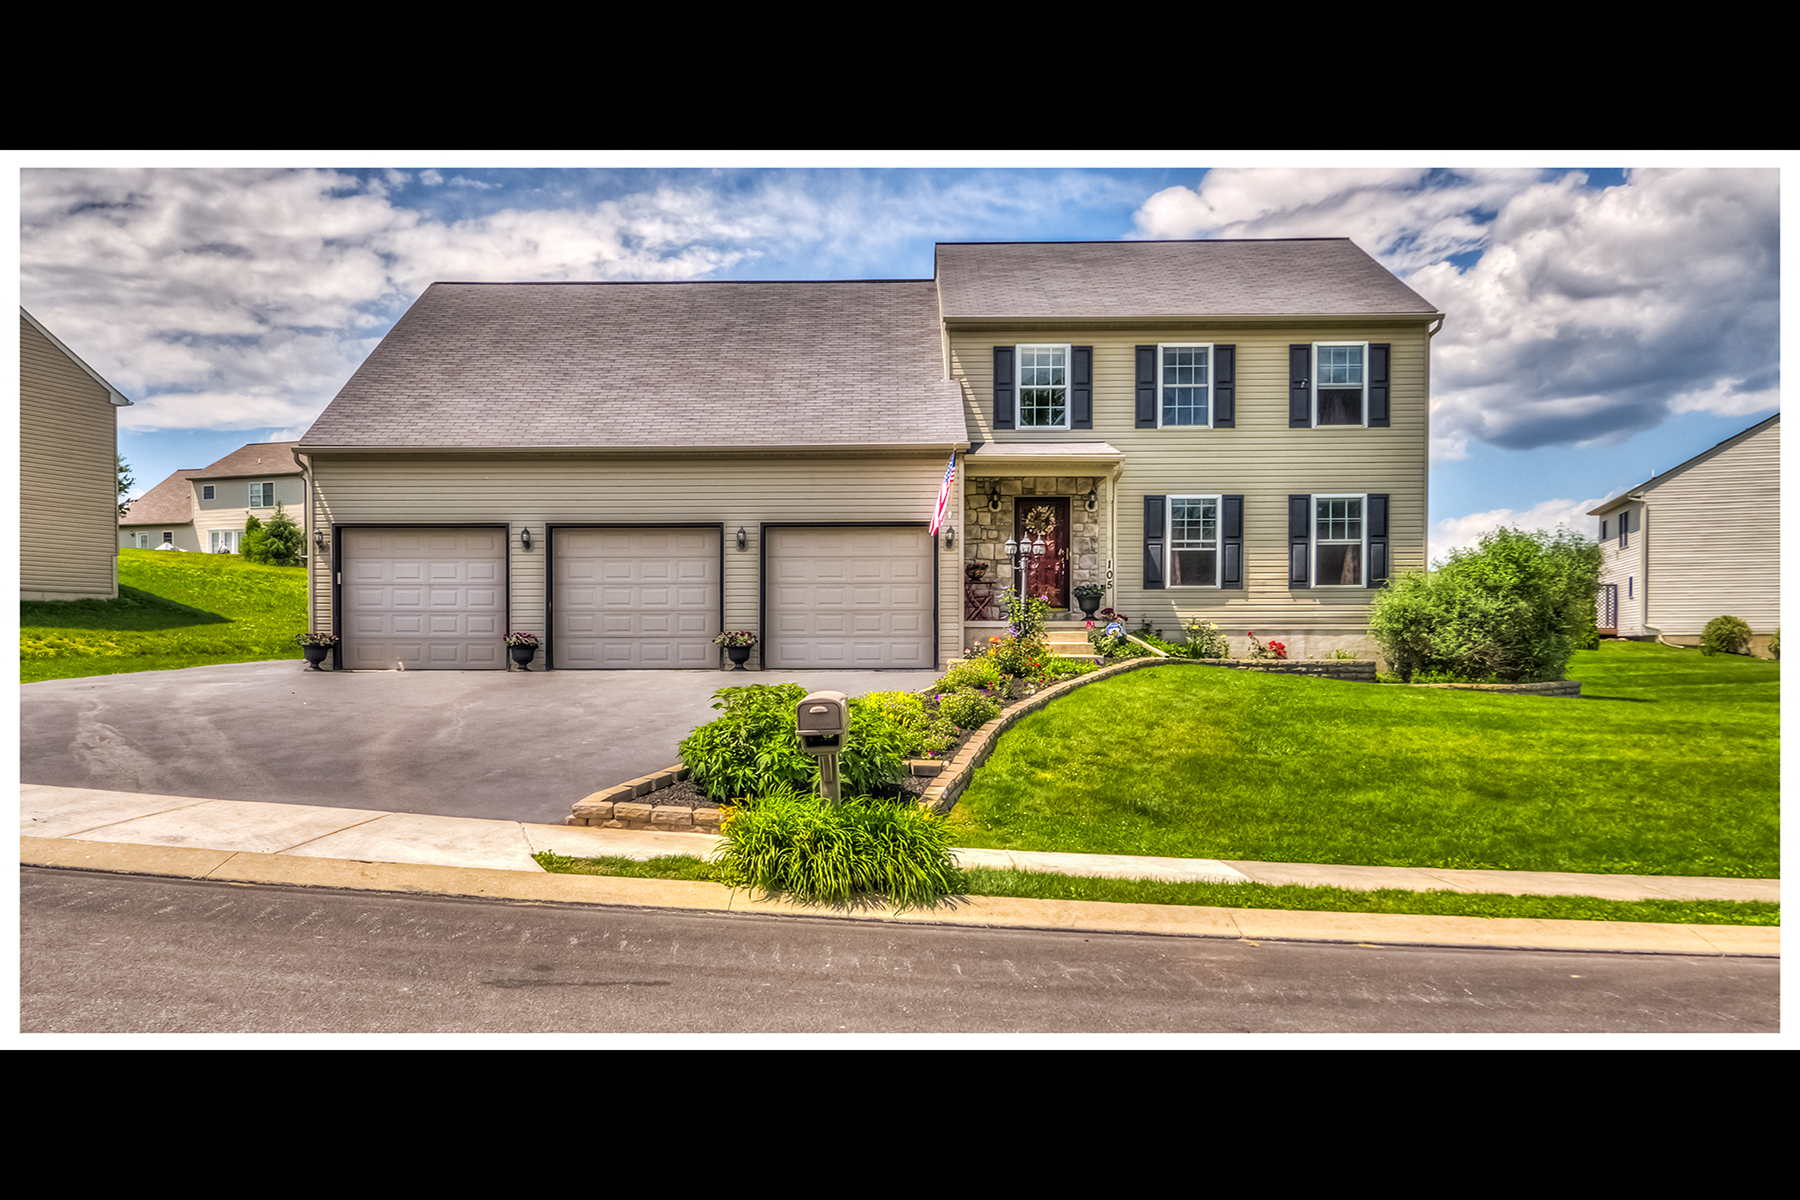 Single Family Home for Sale at 105 Bryn Way Mount Wolf, Pennsylvania 17347 United States